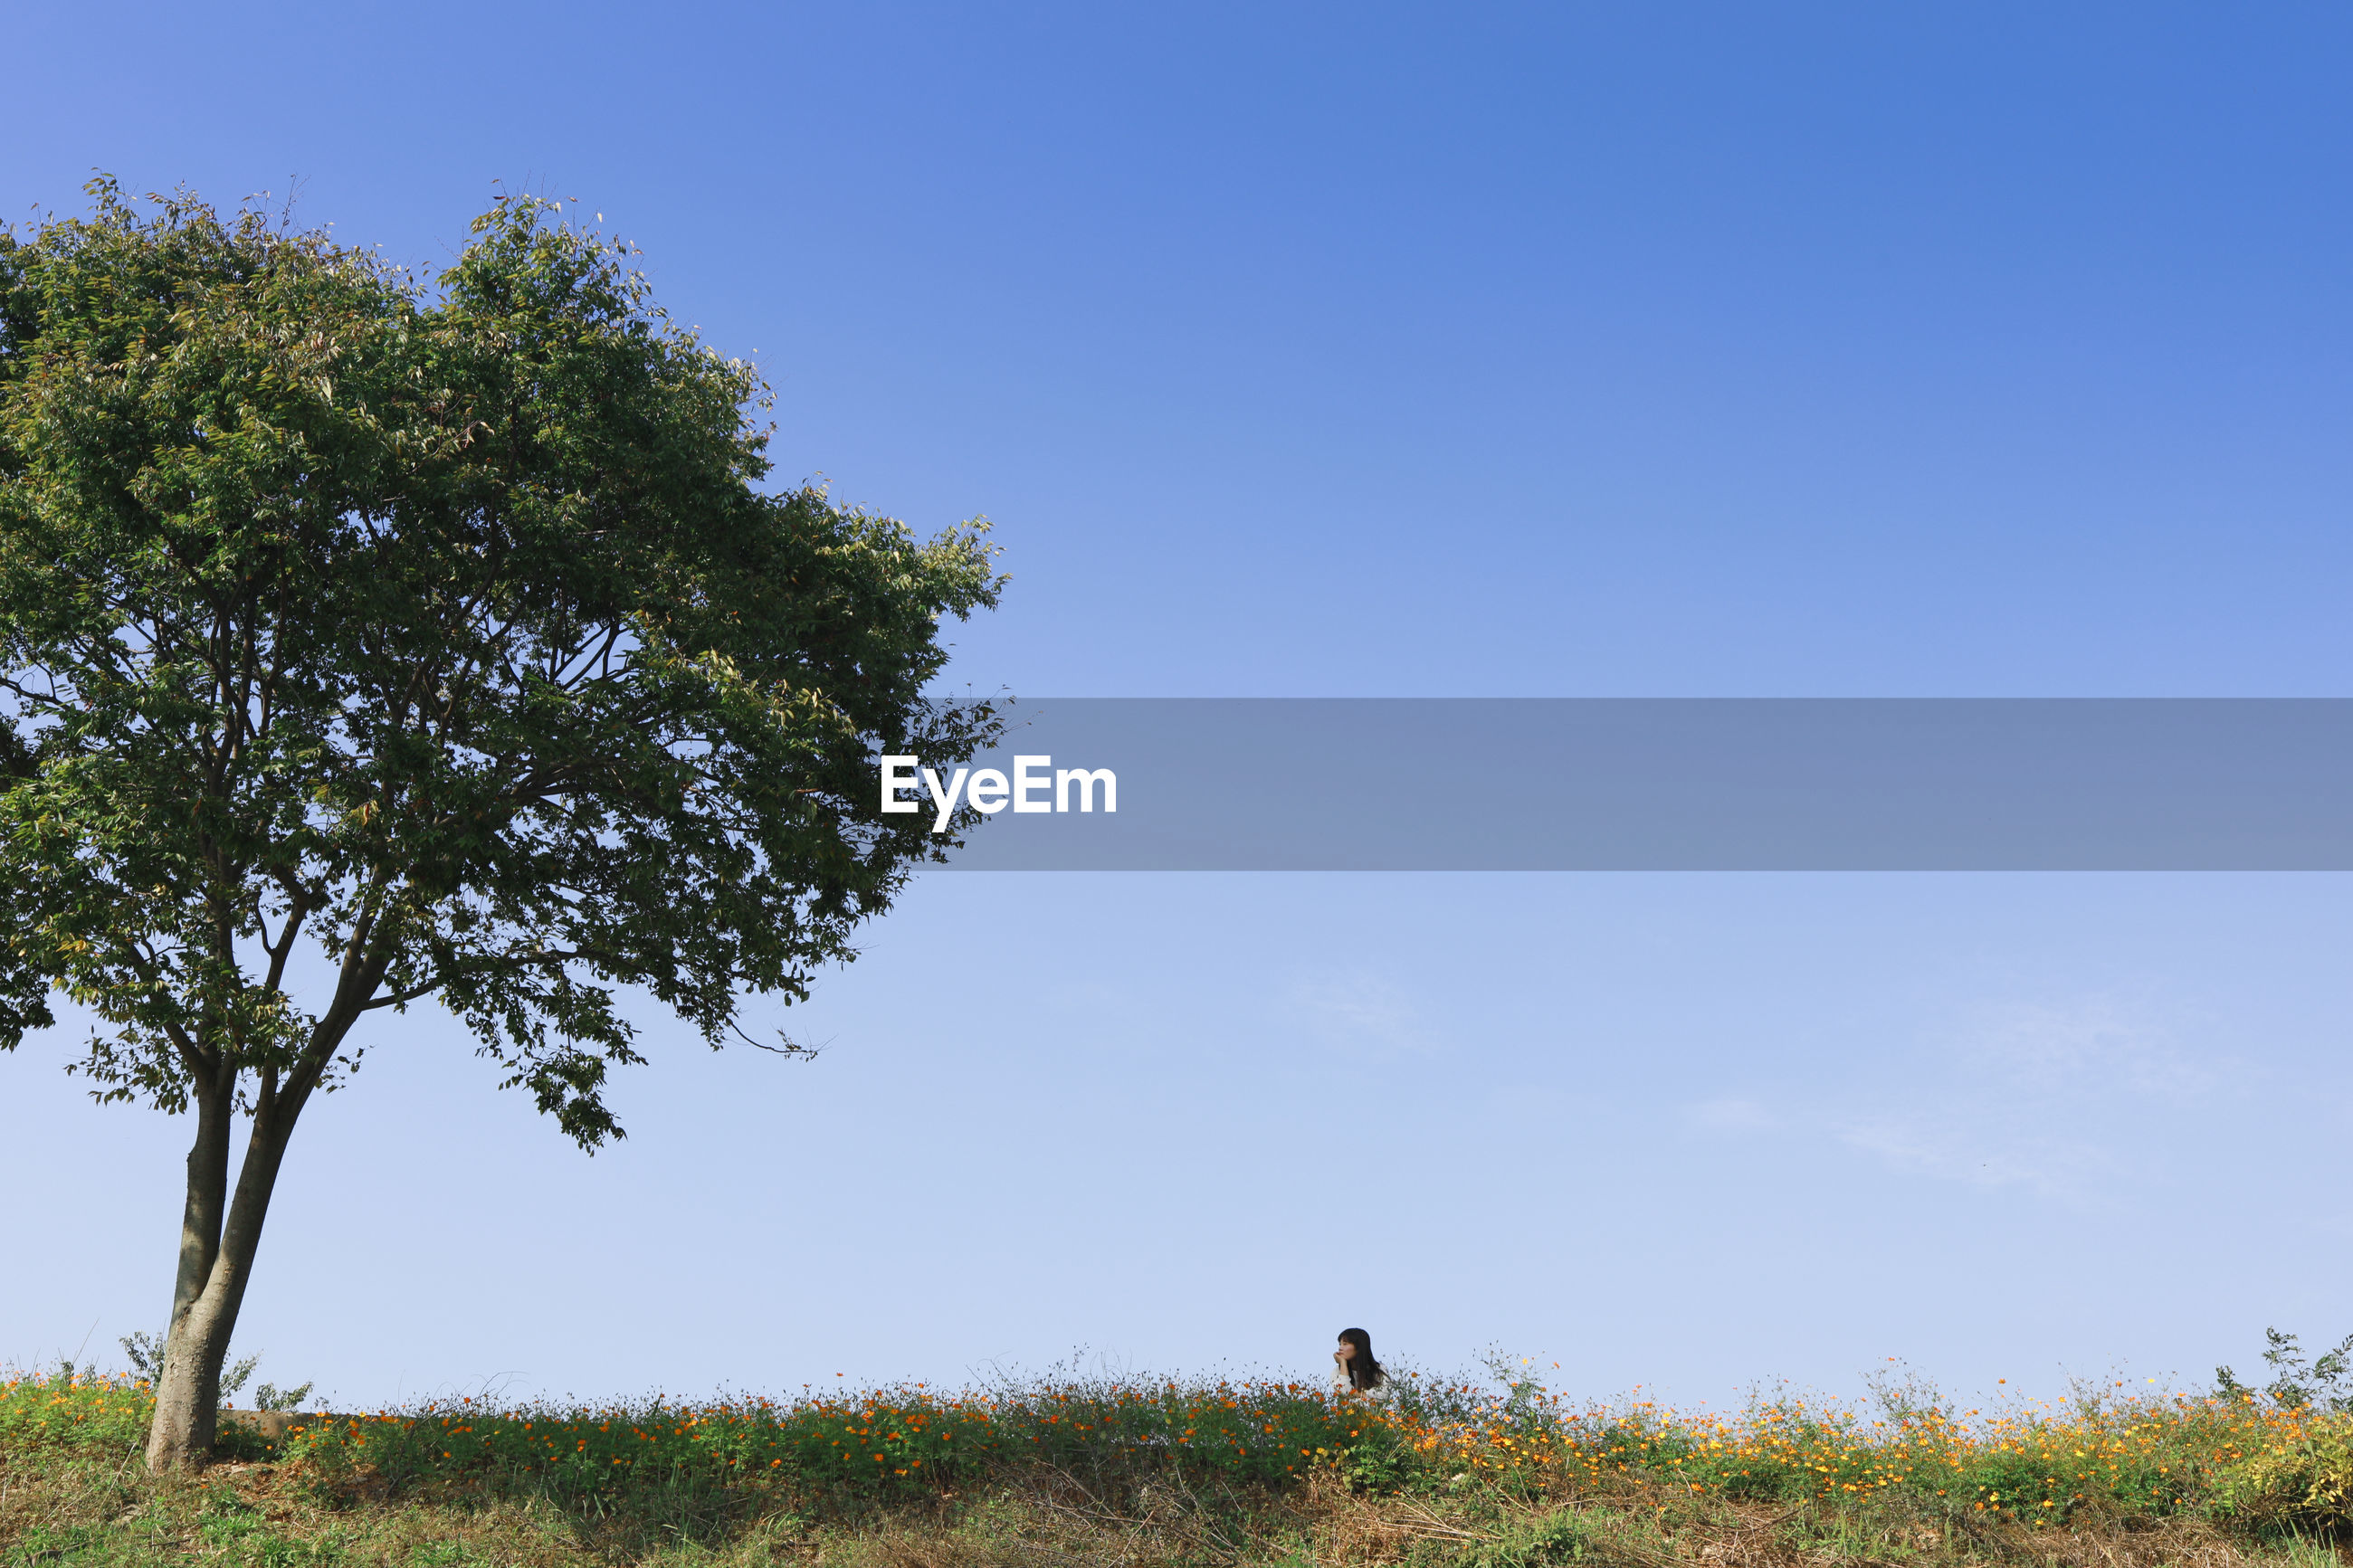 Woman on field by tree against clear blue sky